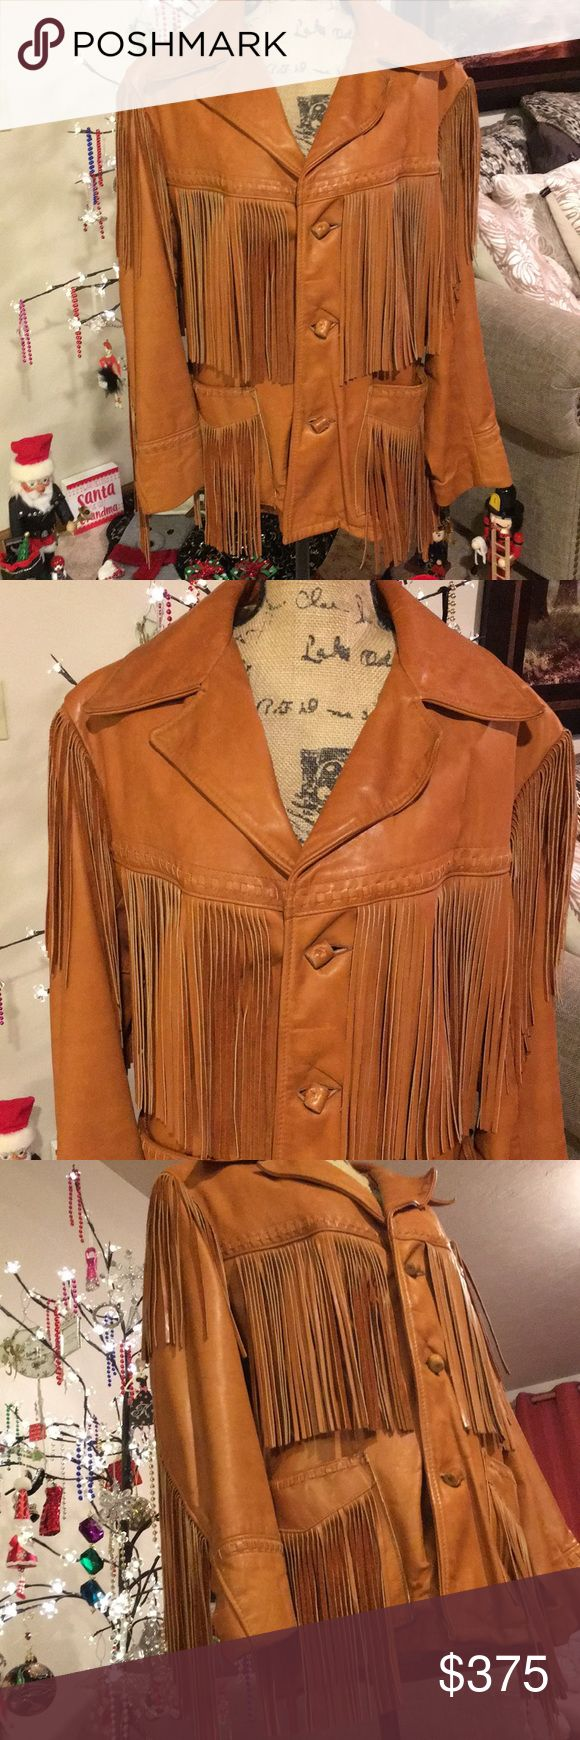 """Schott NYC Leather Rancher Fringe Jacket. This authentic western styling rancher fringe jacket by Schott NYC is amazing. The leather is so soft and supple. Absolutely beautiful attention to detail. Men's size 42. Brand new. Pit to pit approximately 21"""" and shoulder to hem approximately 29"""". Schott NYC Jackets & Coats"""